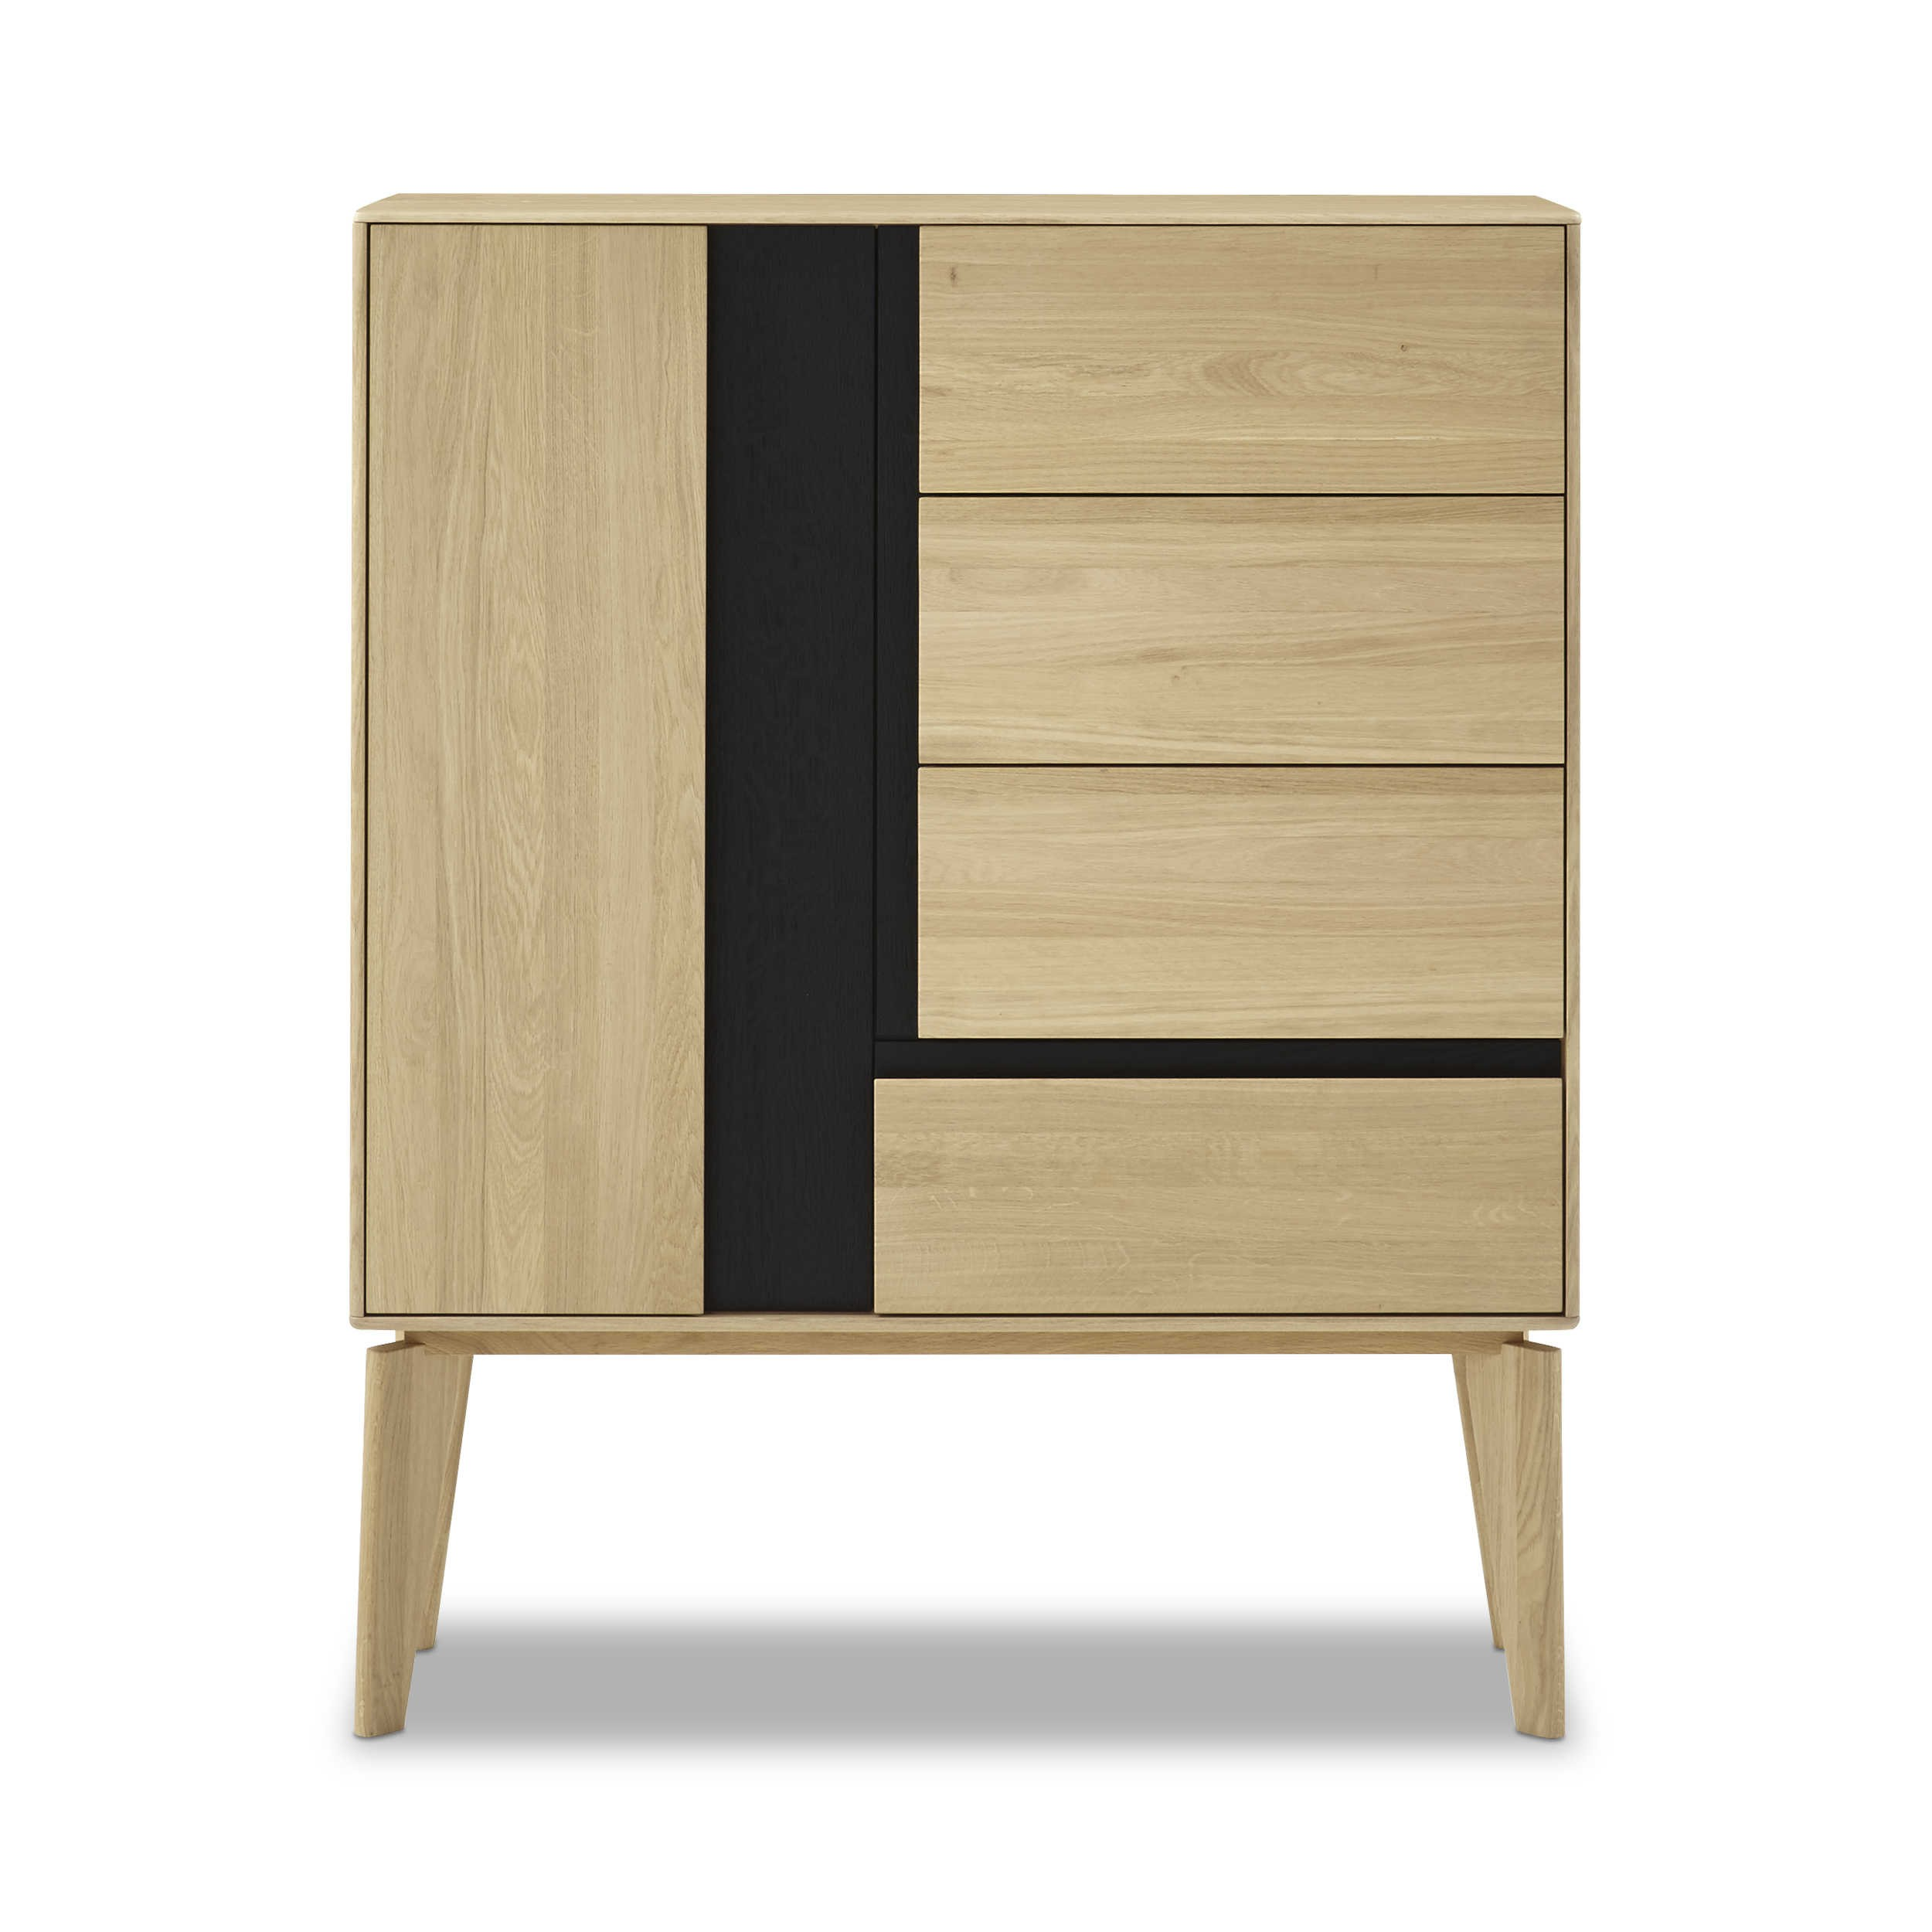 sch ner wohnen highboard craft 4112 eiche holz online kaufen bei woonio. Black Bedroom Furniture Sets. Home Design Ideas